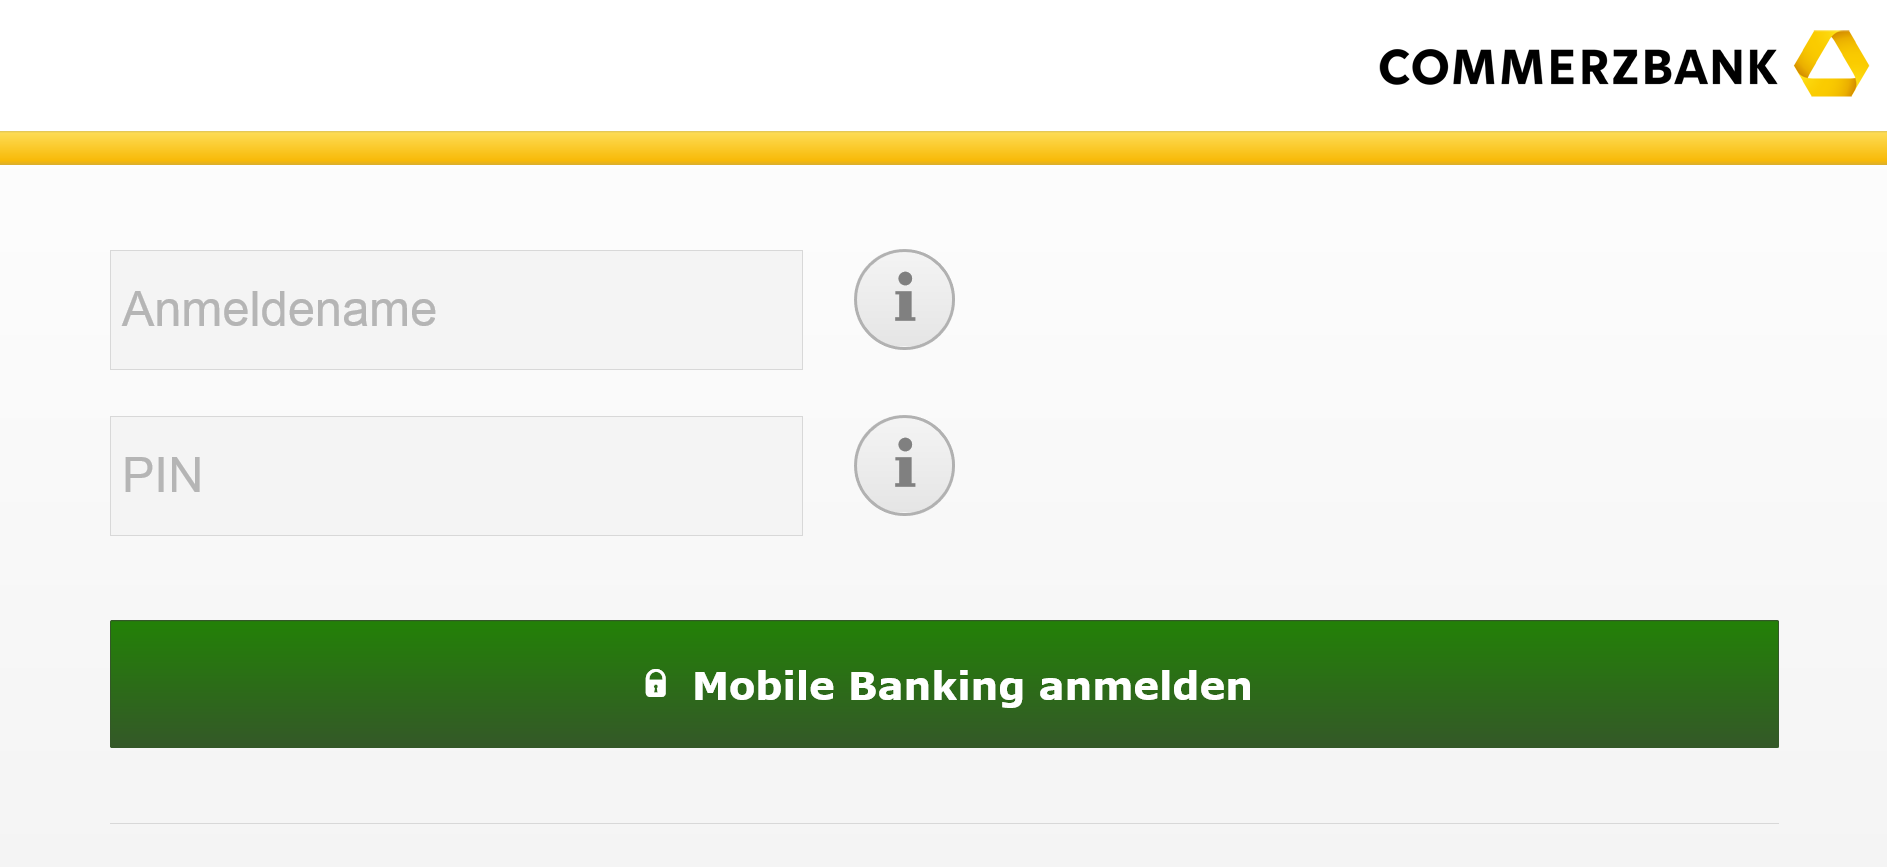 Die mobile Website der Commerzbank